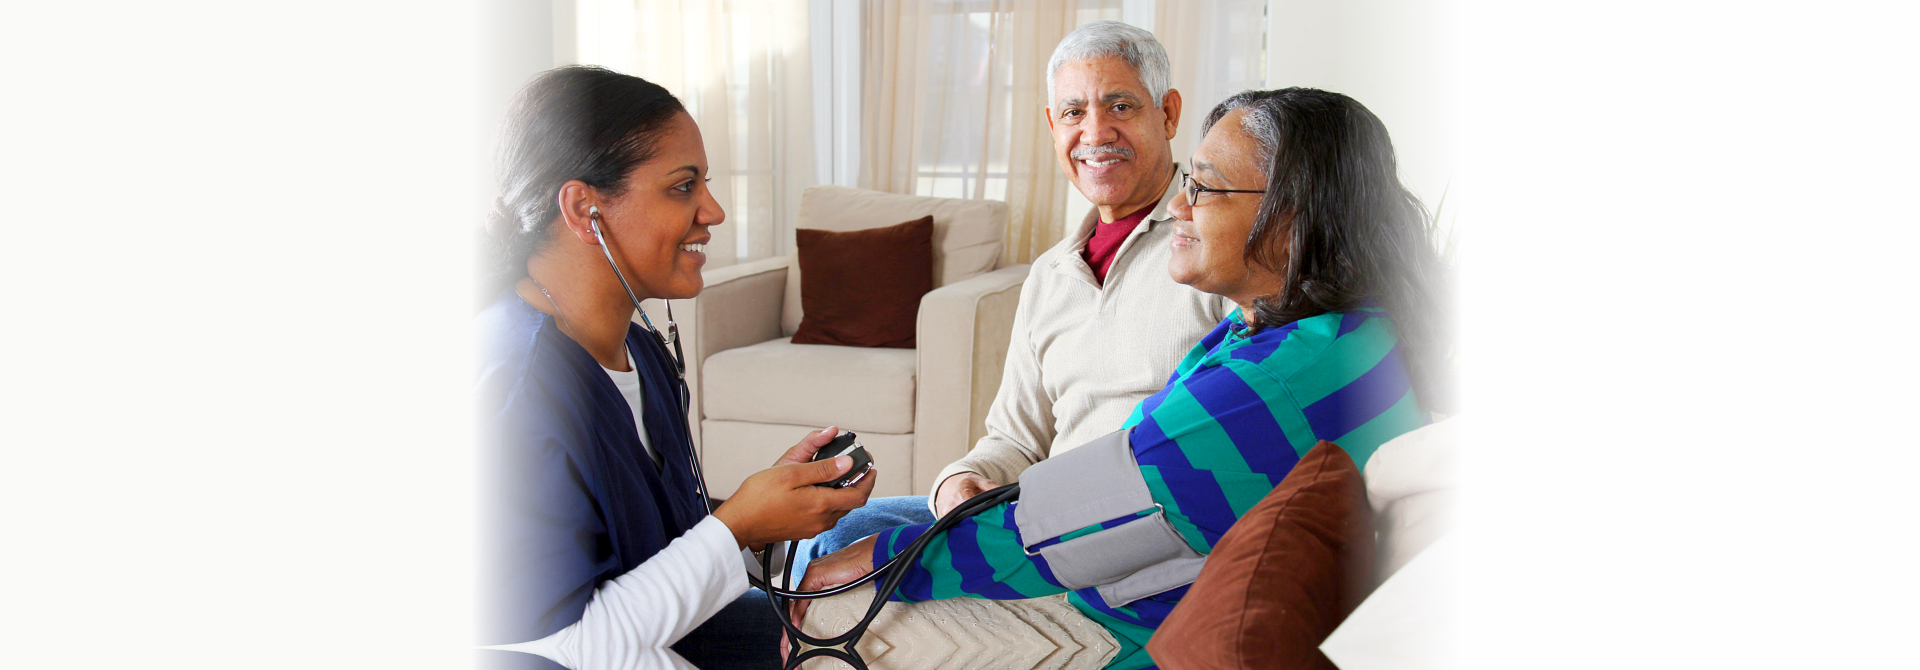 caregiver checking blood pressure of the old woman